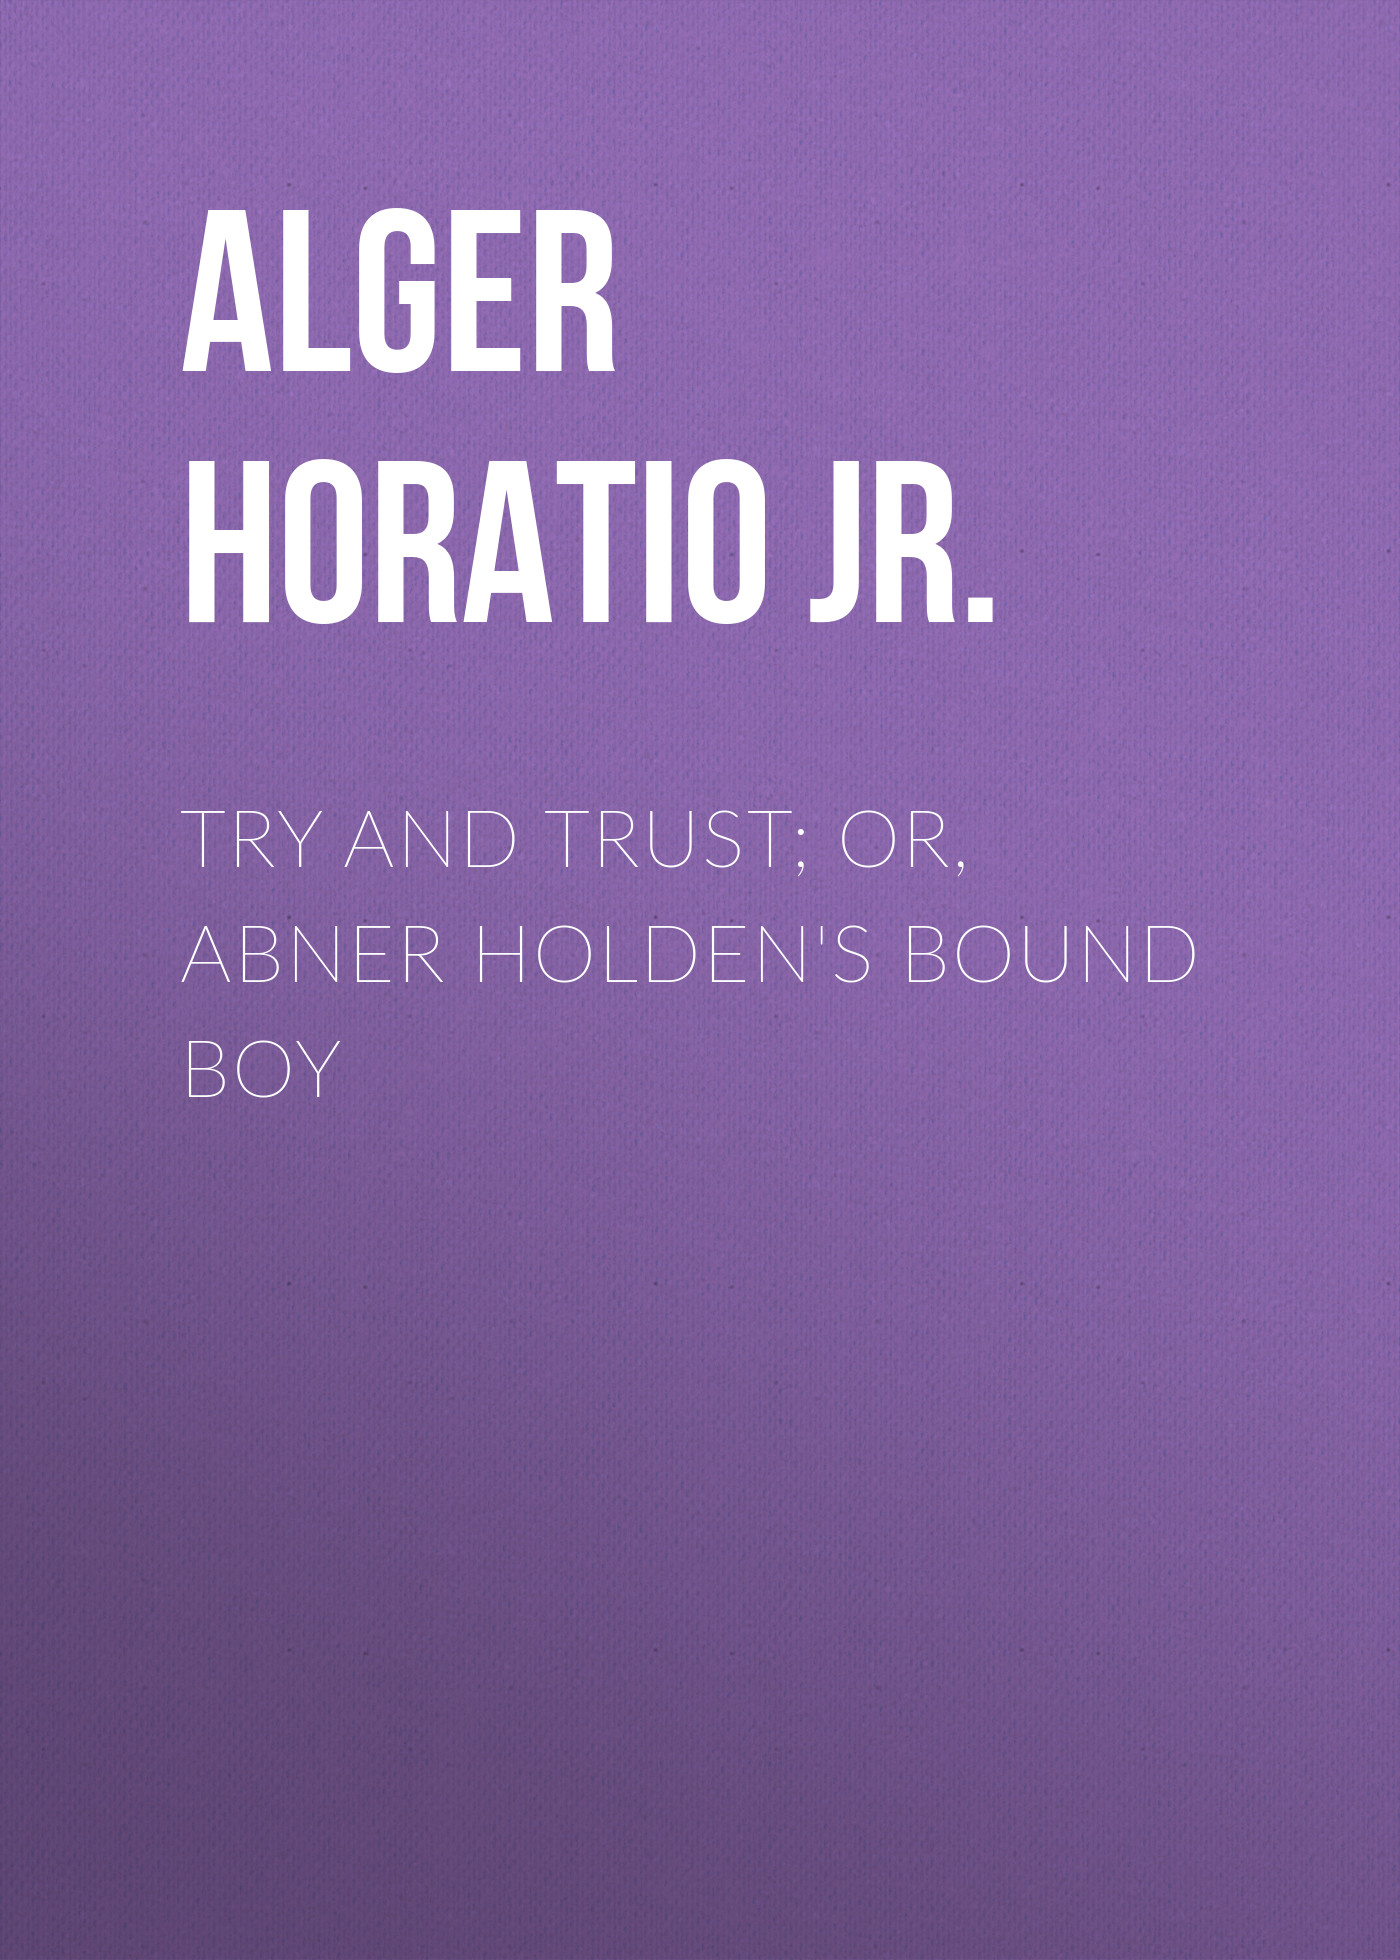 Try and Trust; Or, Abner Holden's Bound Boy